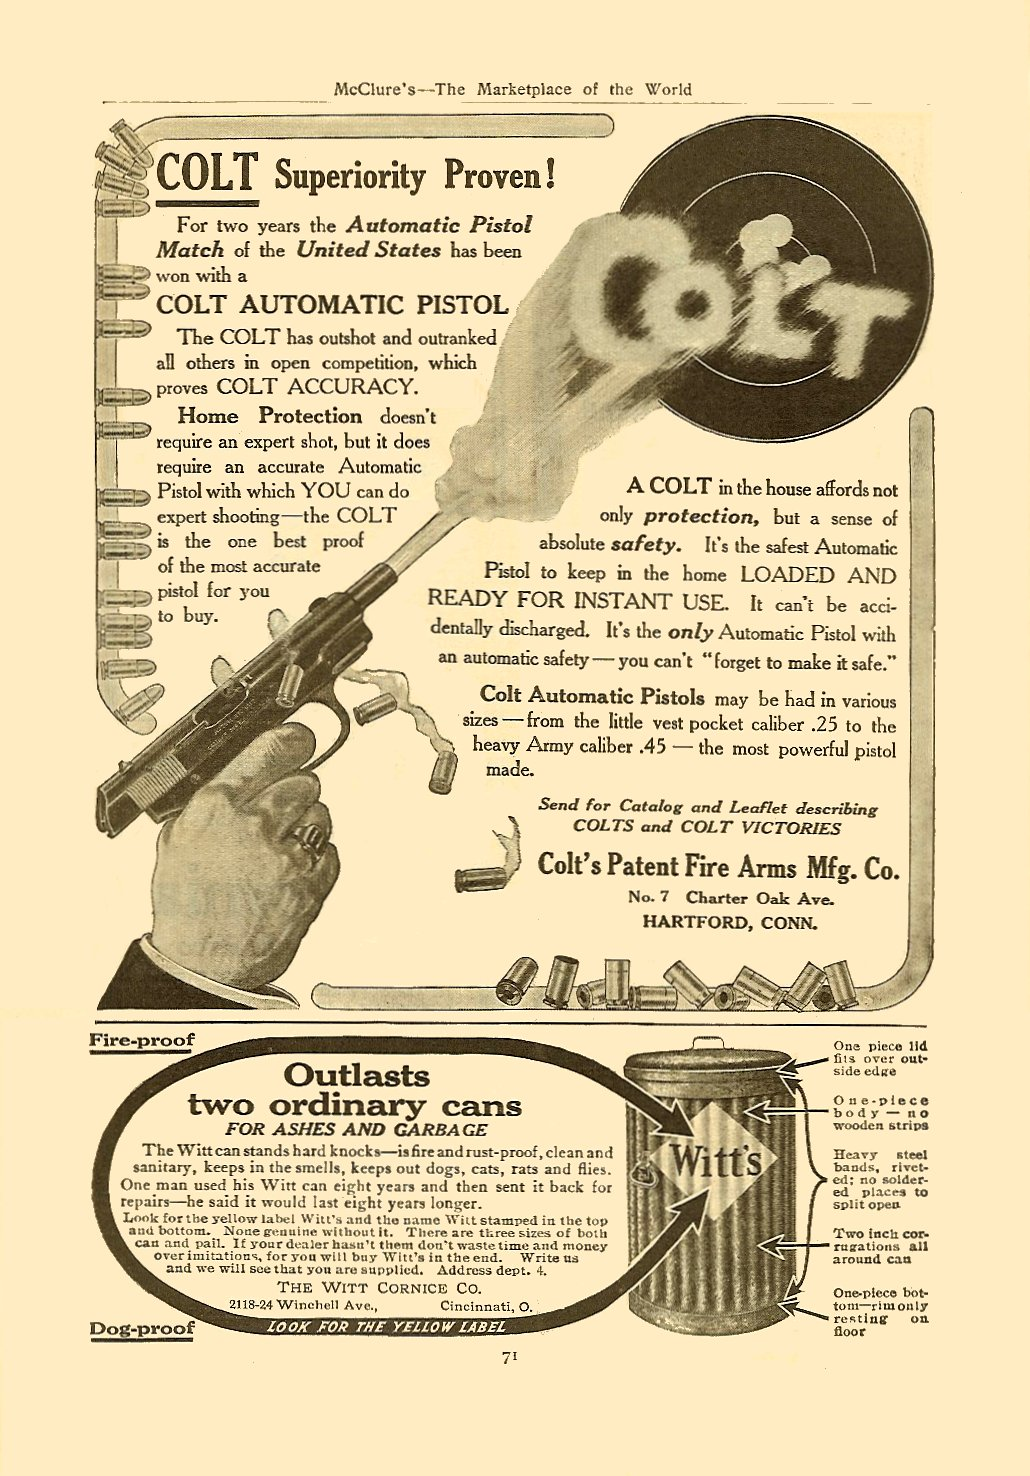 1911 1 COLT Colt's Patent Fire Arms Mfg. Co. Hartford, CONN January 1911 McClure's – The Marketplace of the World 6.75″x9.75″, AD = 5.5″x6″ page 71